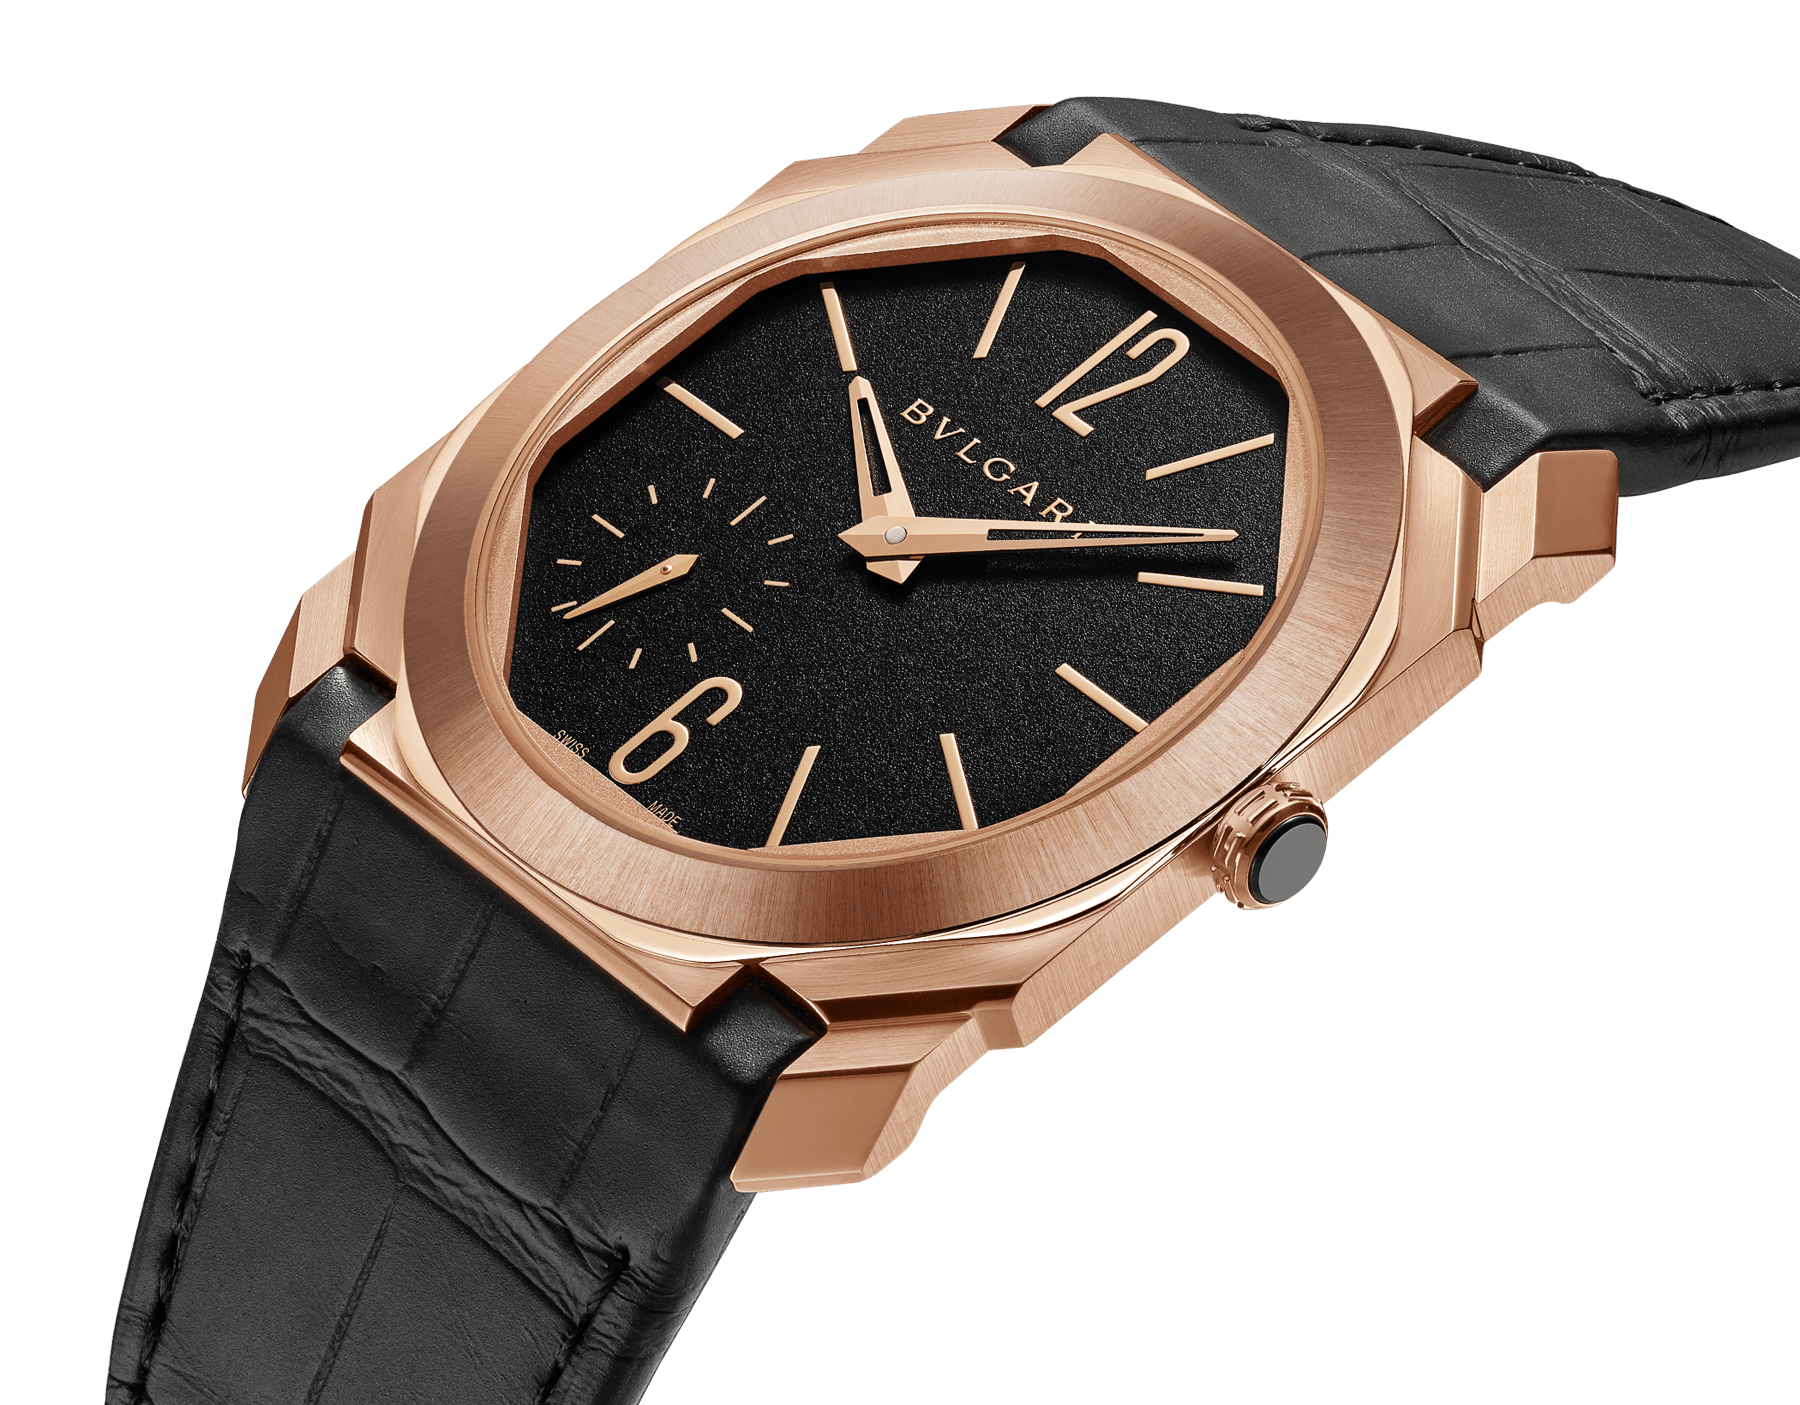 Octo Finissimo Automatic watch with mechanical manufacture movement, automatic winding, platinum micro rotor, small seconds, extra-thin 18 kt satin-polished rose gold case, transparent case back, black matte dial and black alligator bracelet. Water-resistant up to 100 meters. 103286 image 2